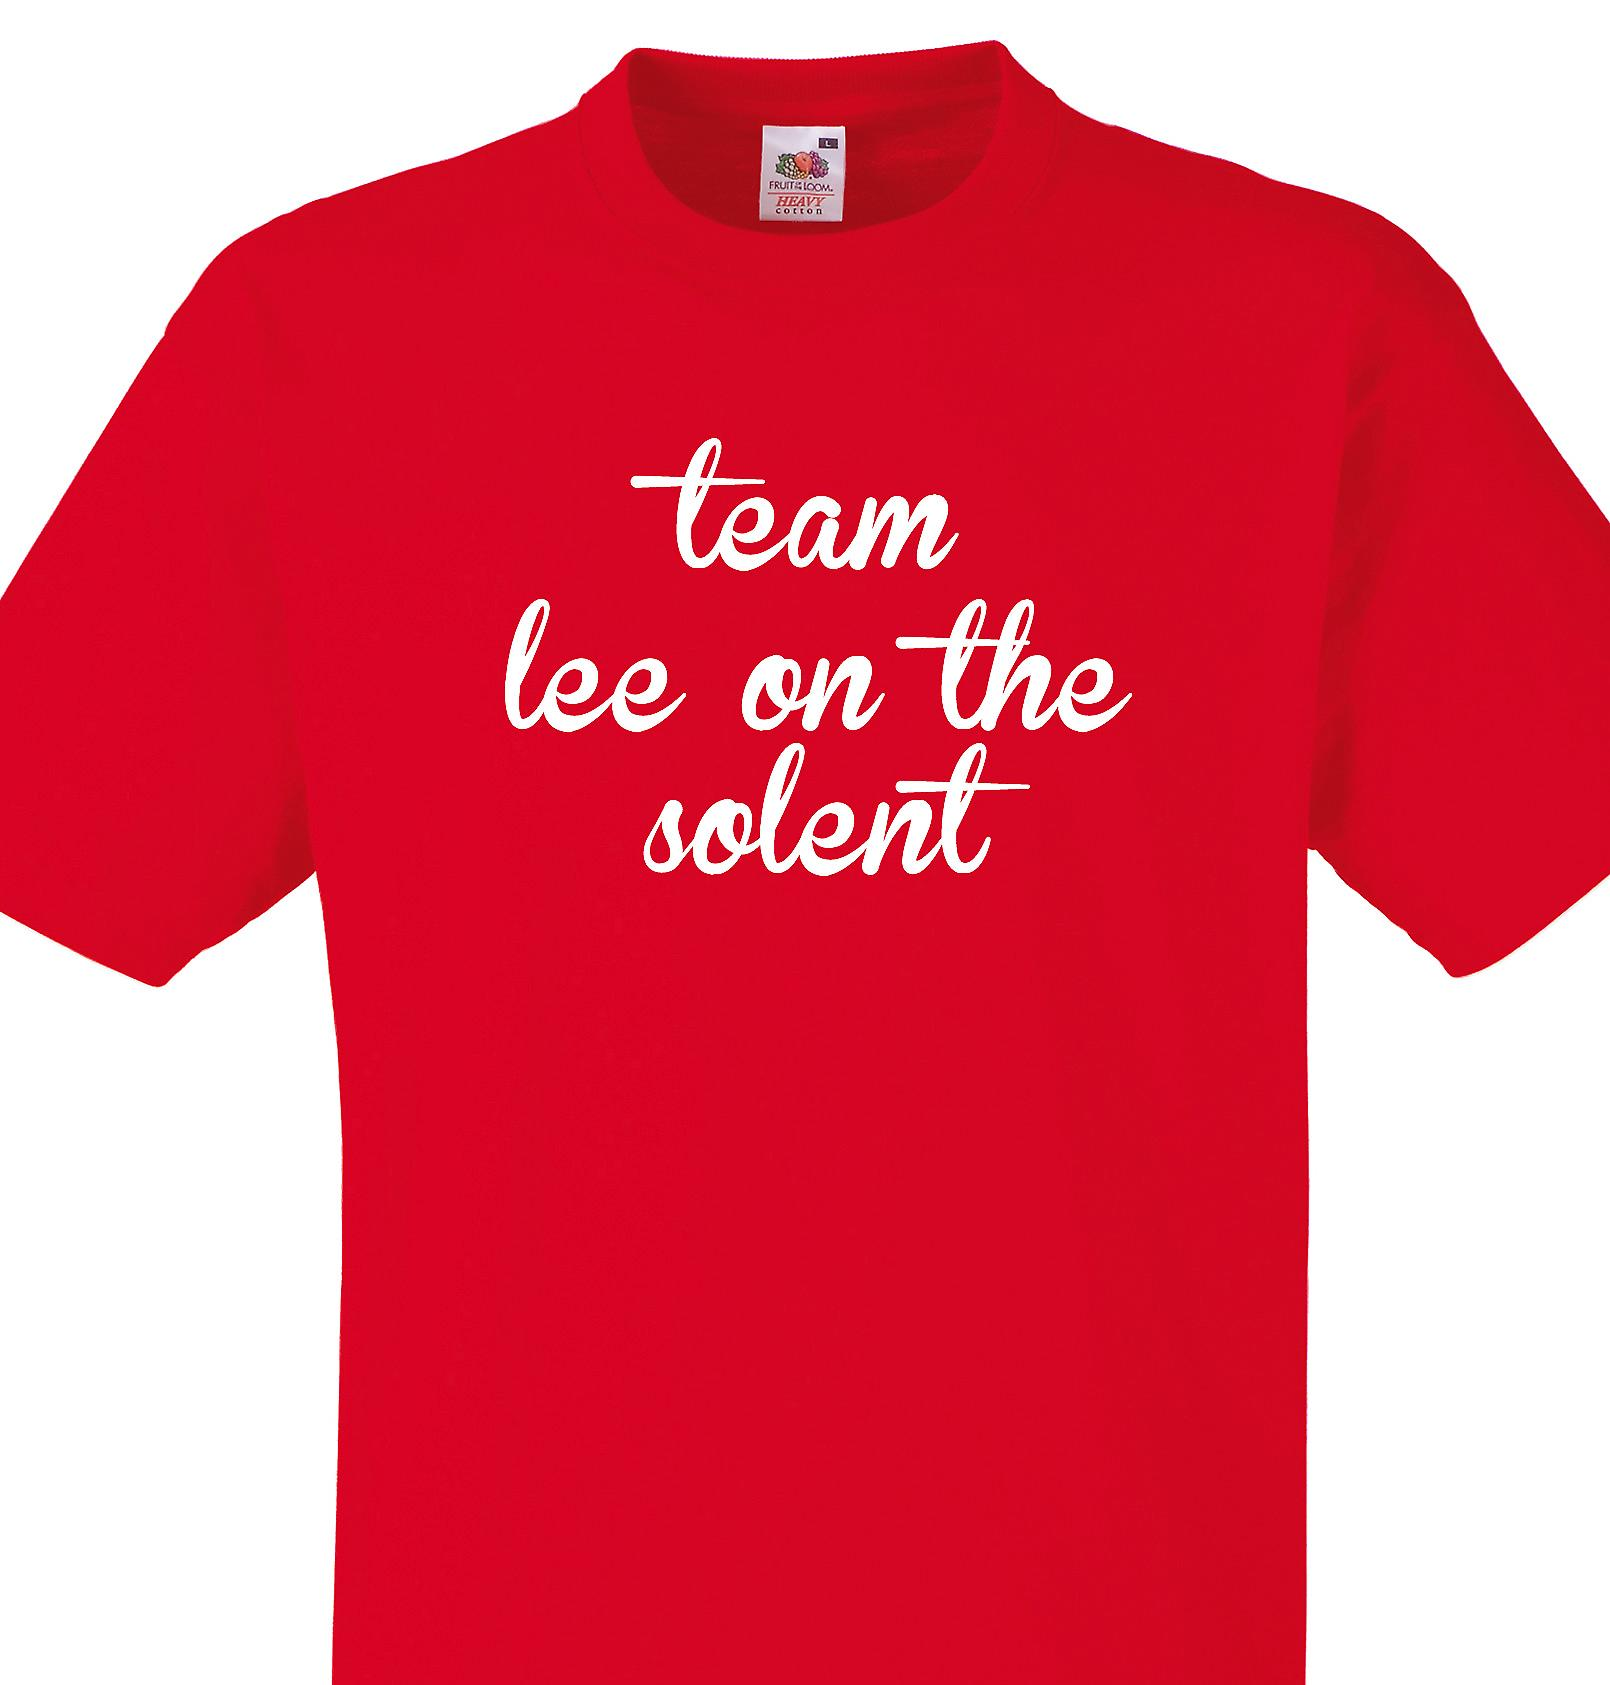 Team Lee on the solent Red T shirt